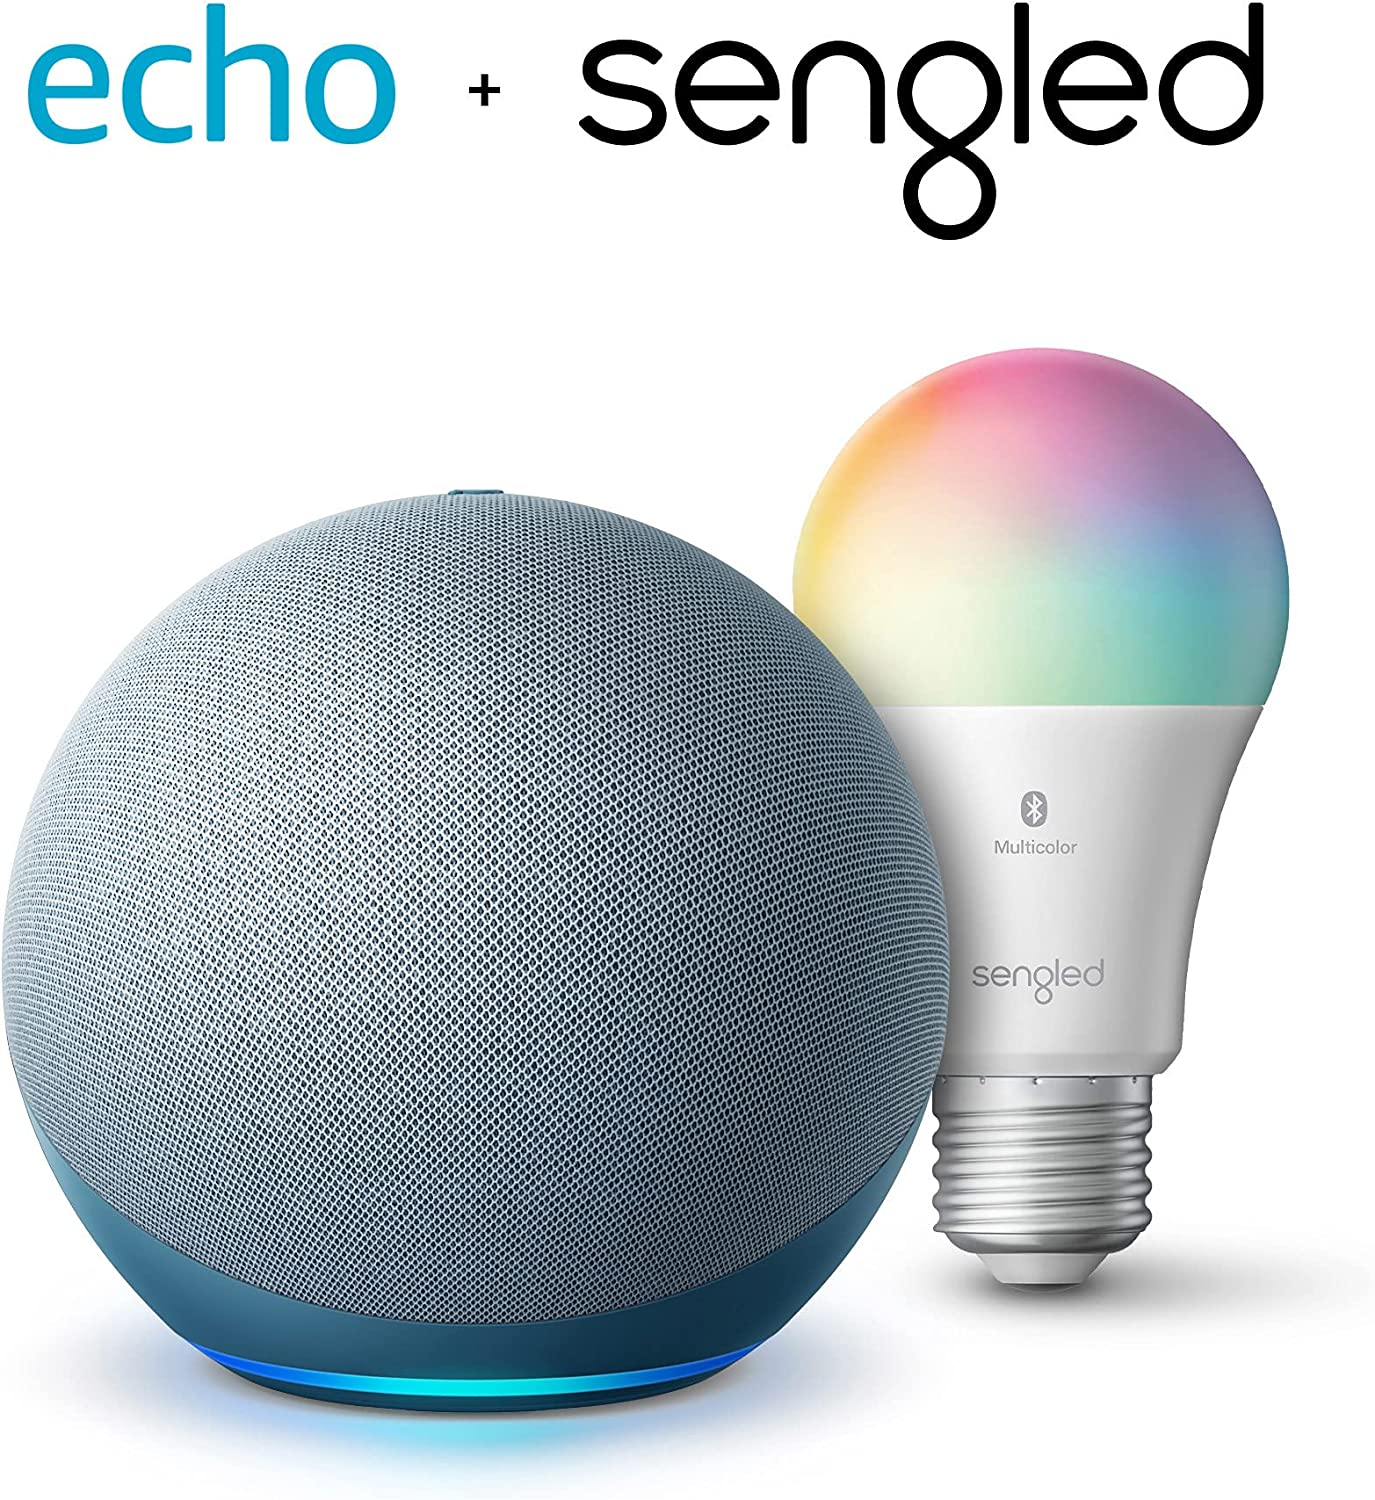 Echo (4th Gen) | With premium sound, smart home hub, and Alexa | Twilight Blue with Sengled Bluetooth Color bulb